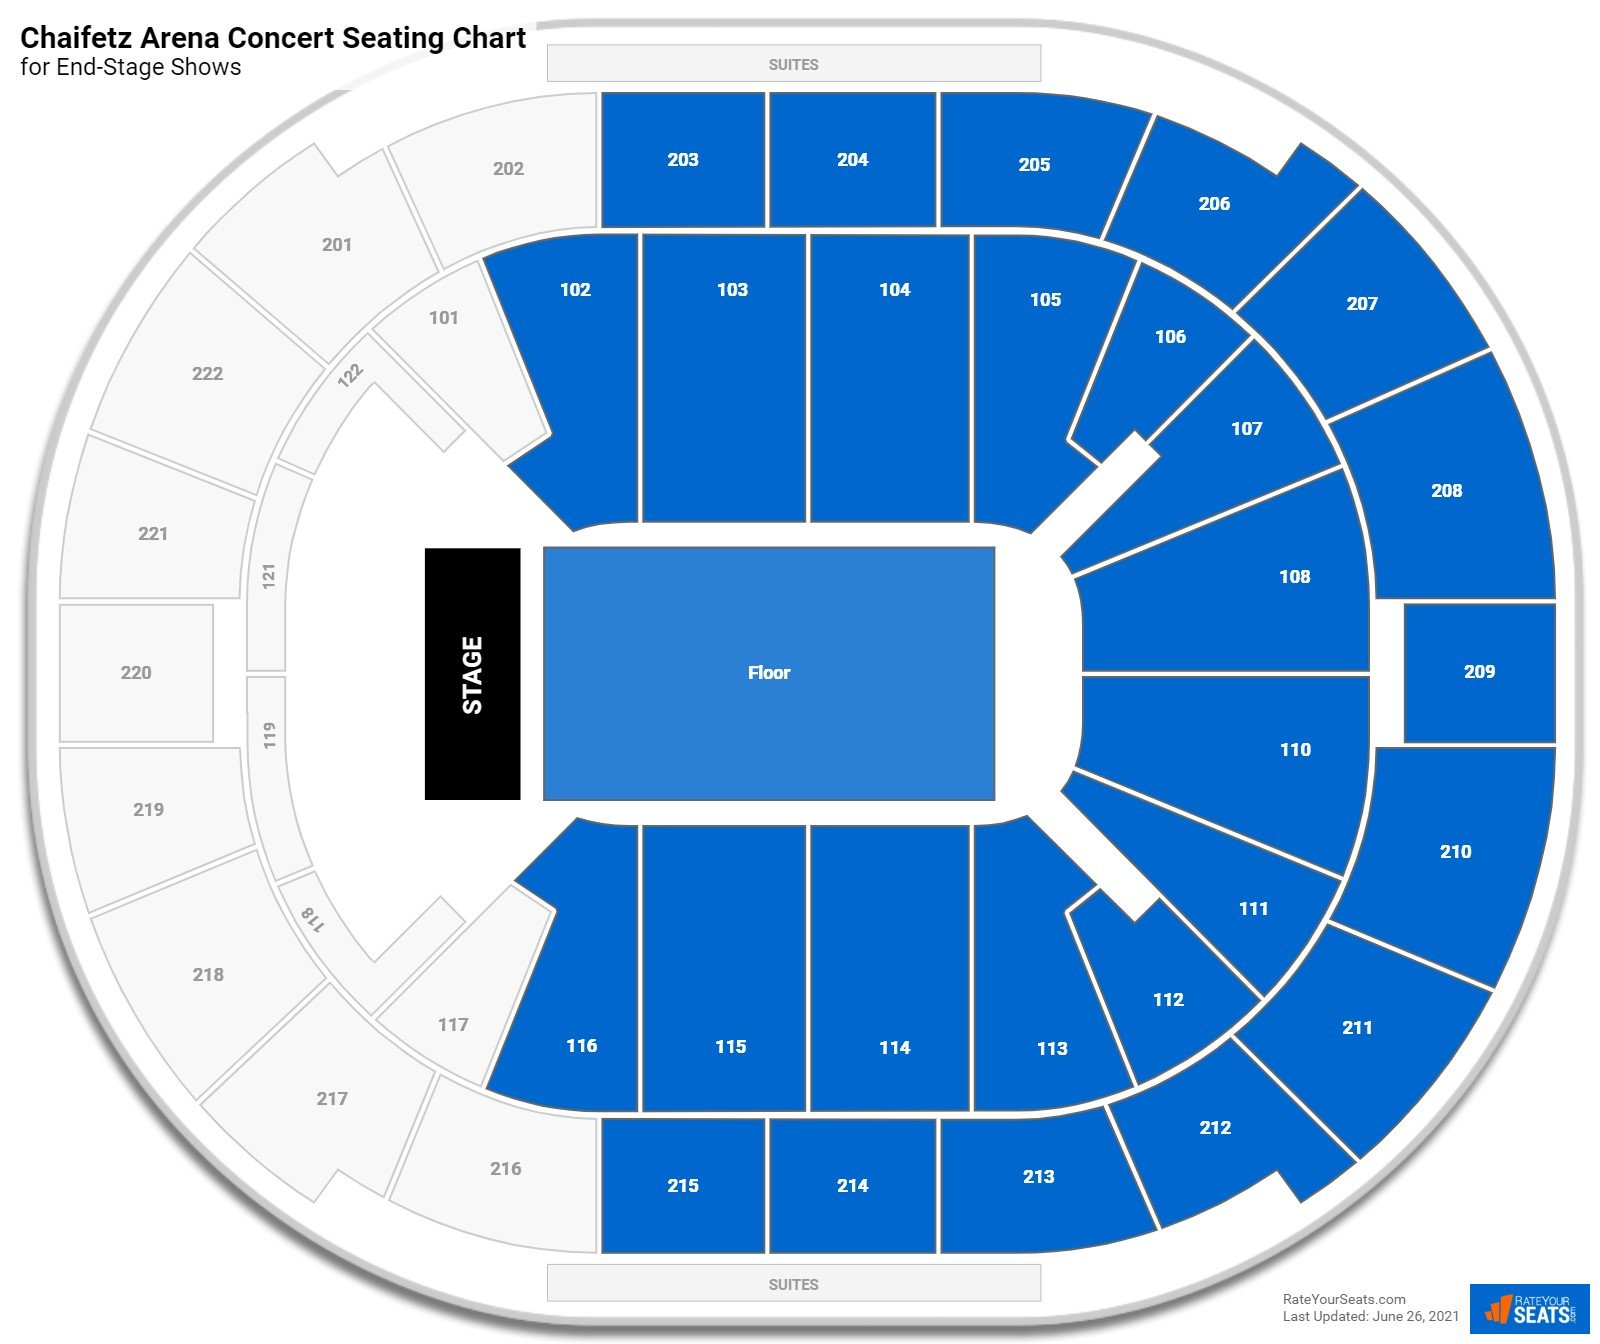 Chaifetz Arena Seating Chart for Concerts